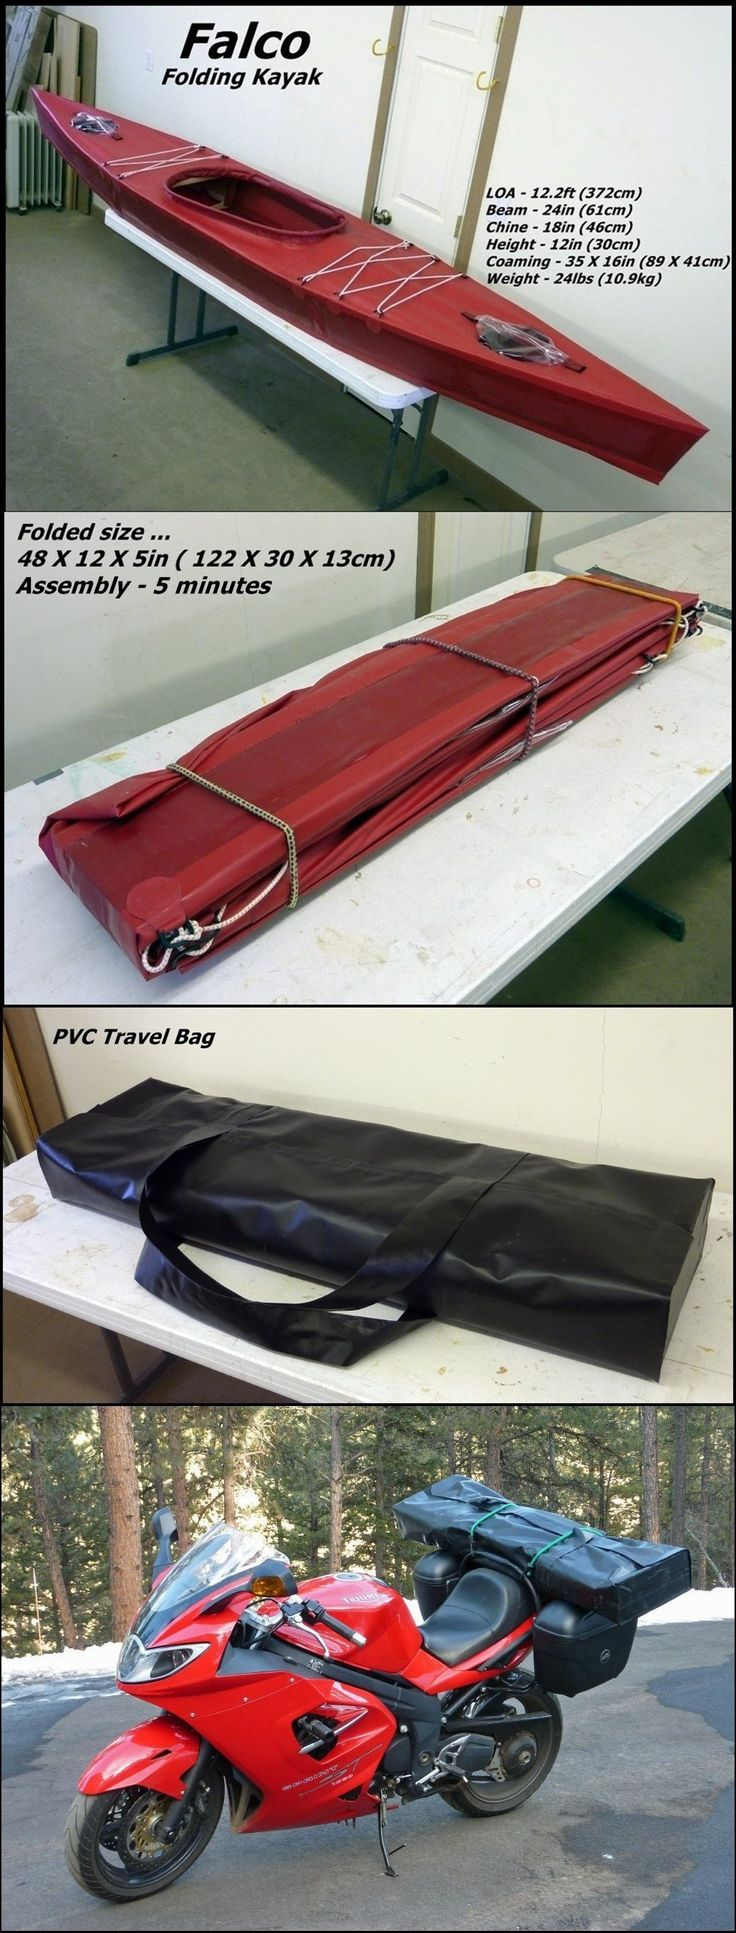 Falco Folding Kayak   .|||. Please follow along with me! #camping #zombies #survival